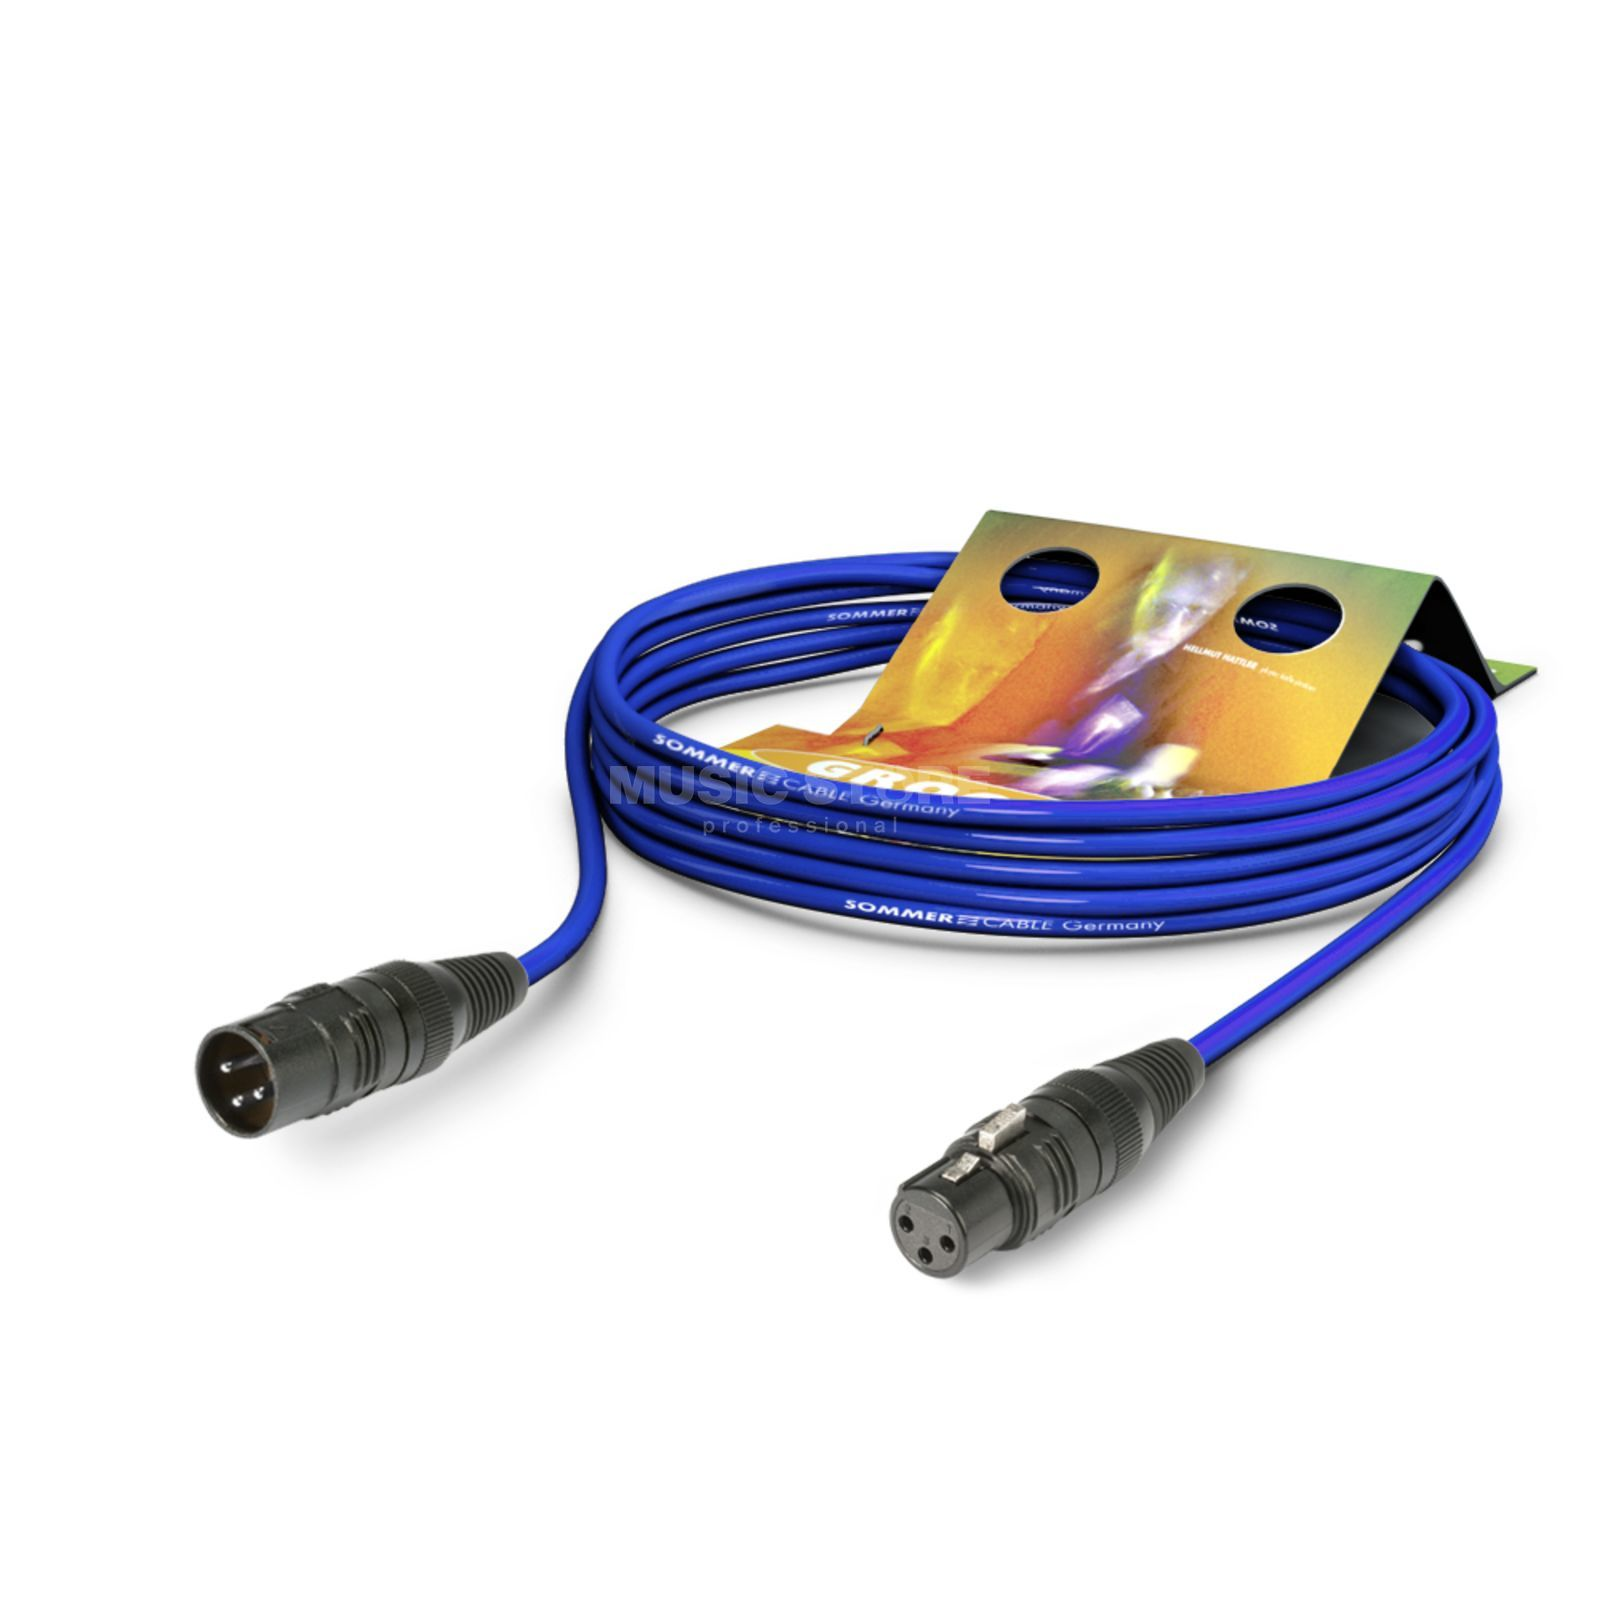 Sommer Cable Mikrofonkabel SC-STAGE 3m blau HICON, SGCE-0300 BL Produktbild